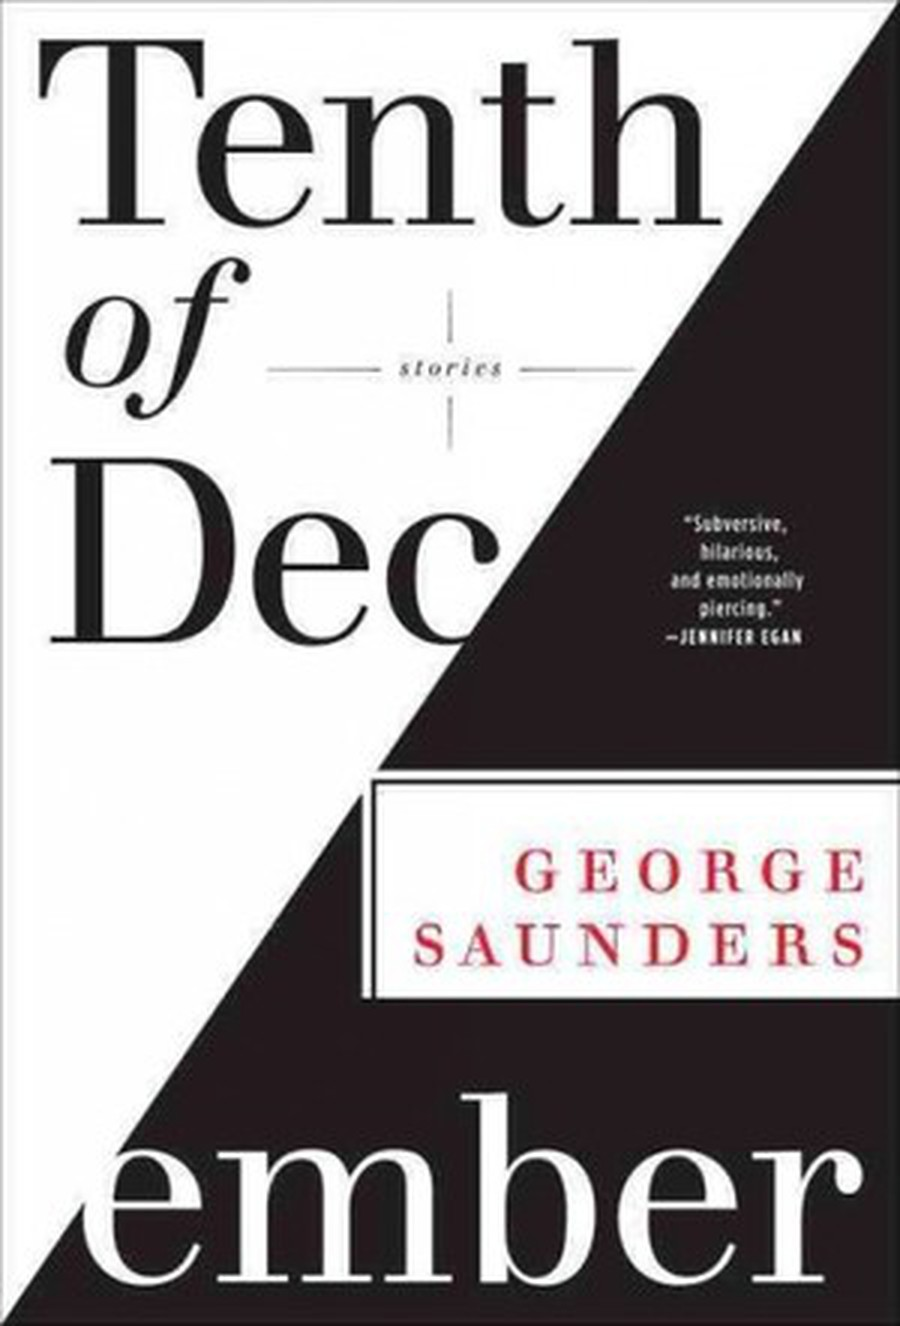 George Saunders' possible secret plan: make college students think they're buying The Myth of Sisyphus.